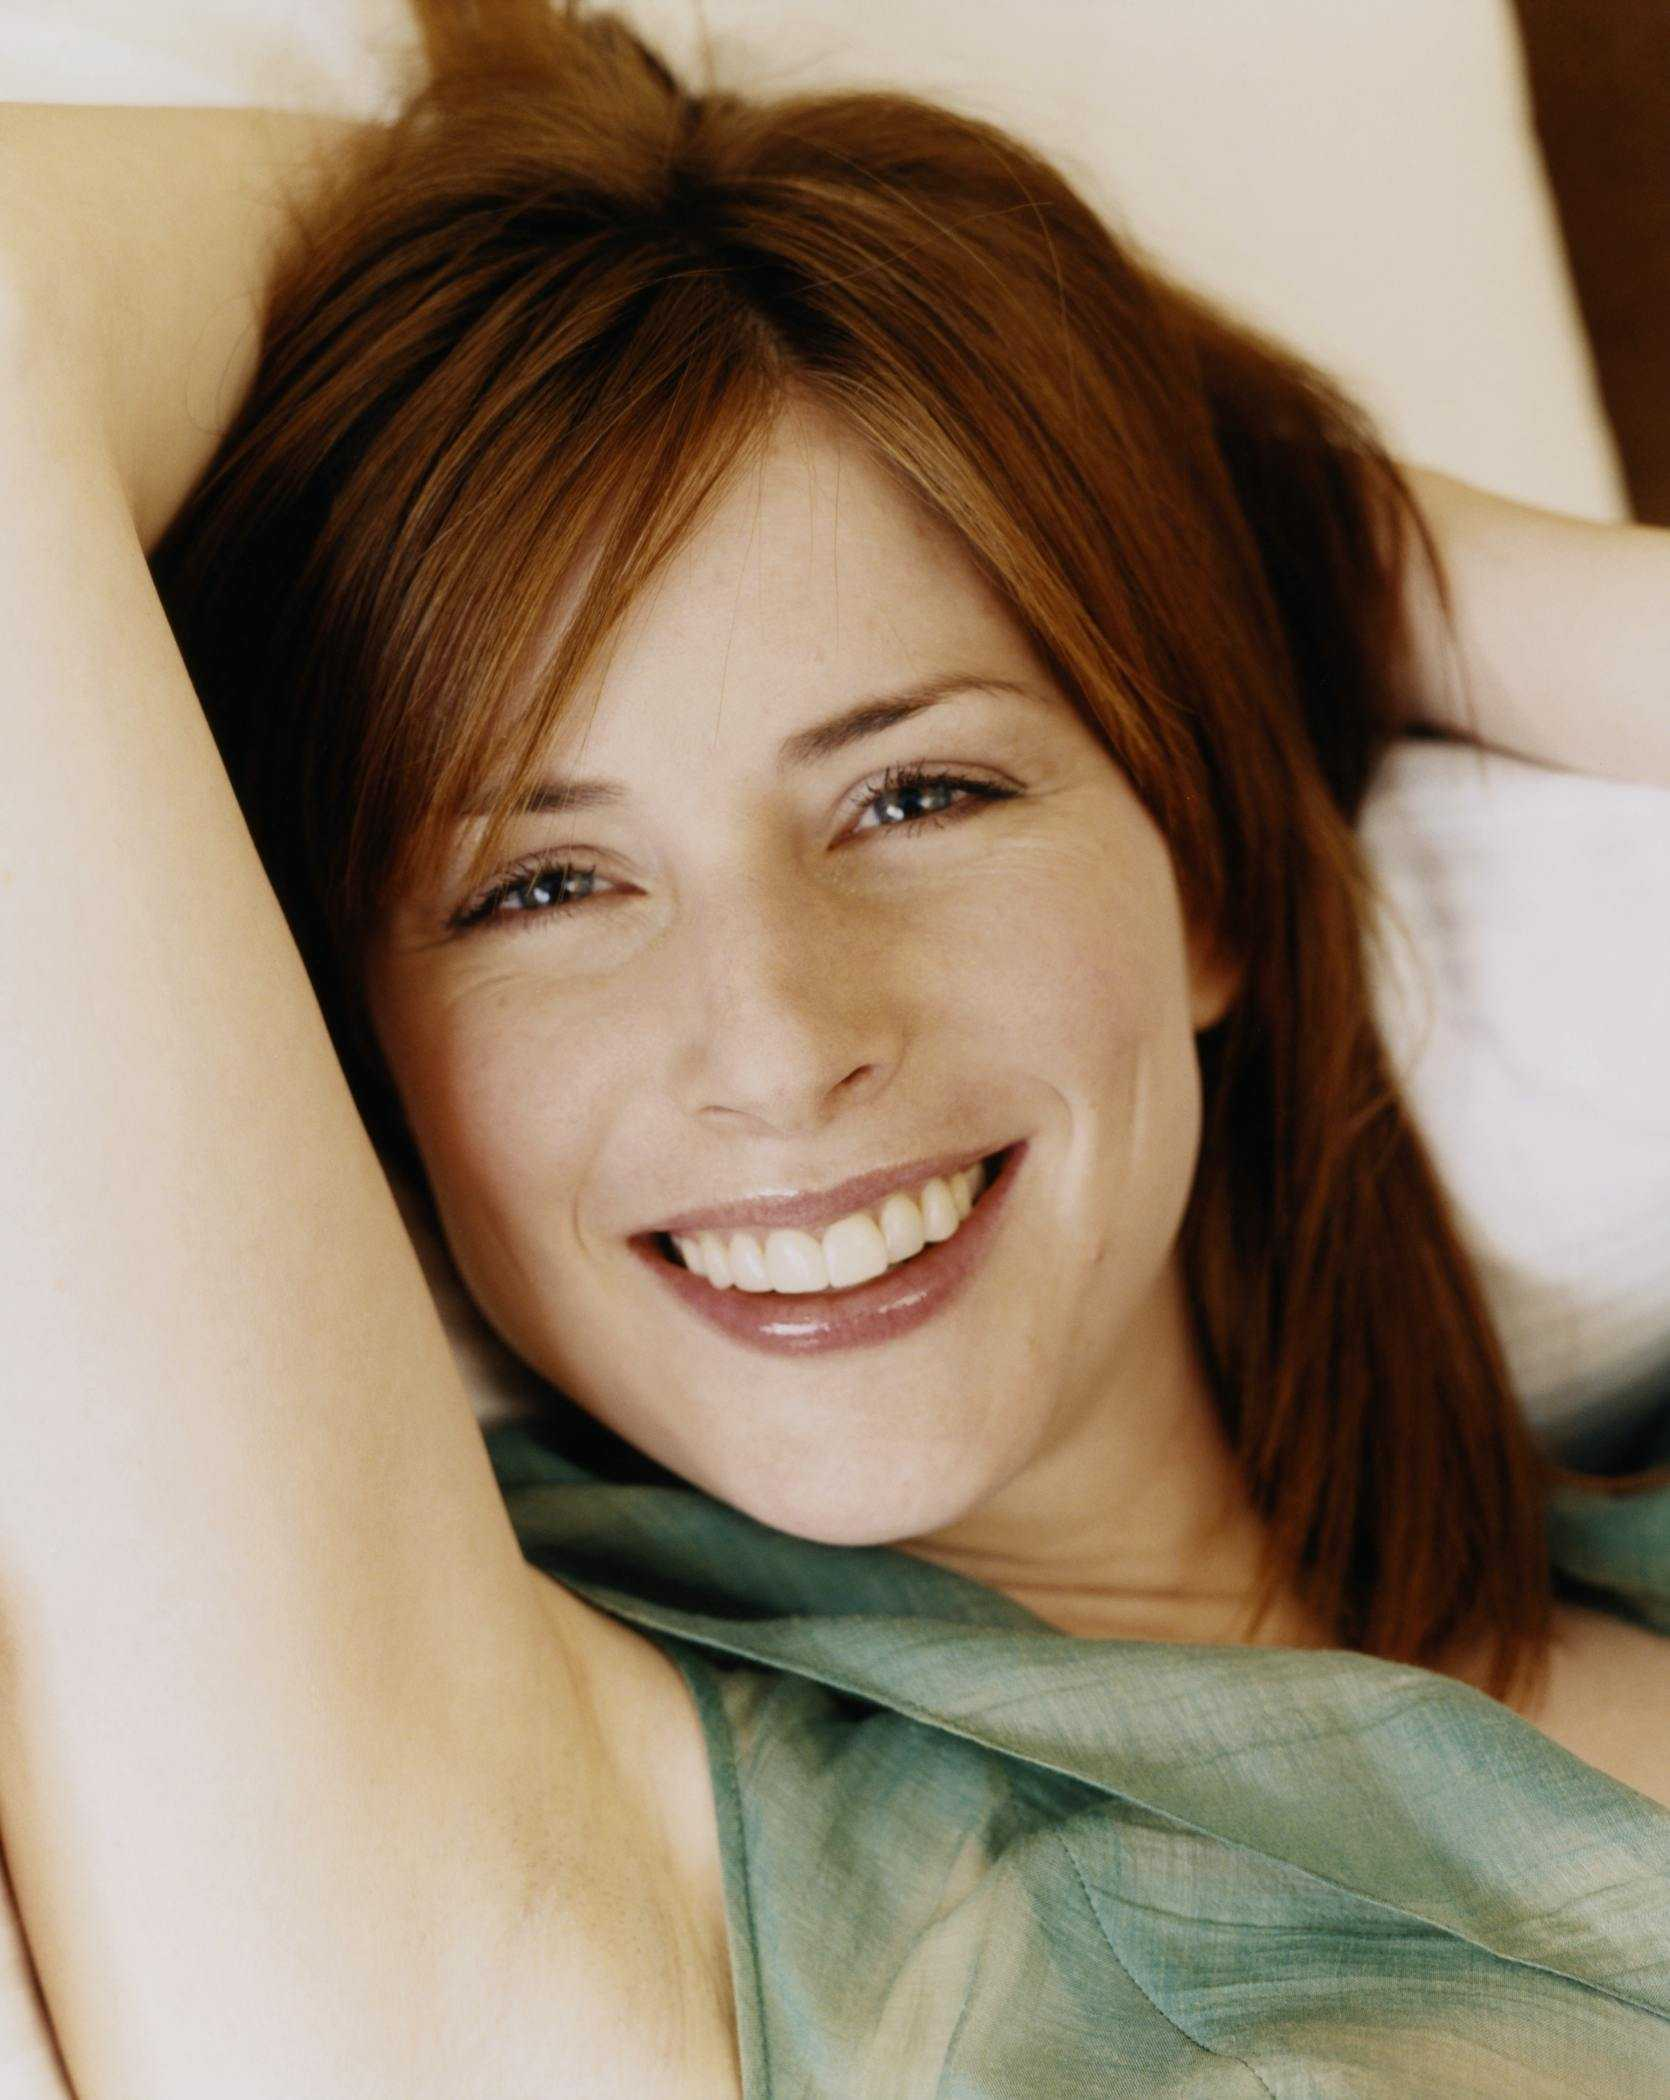 diane neal smile pictures